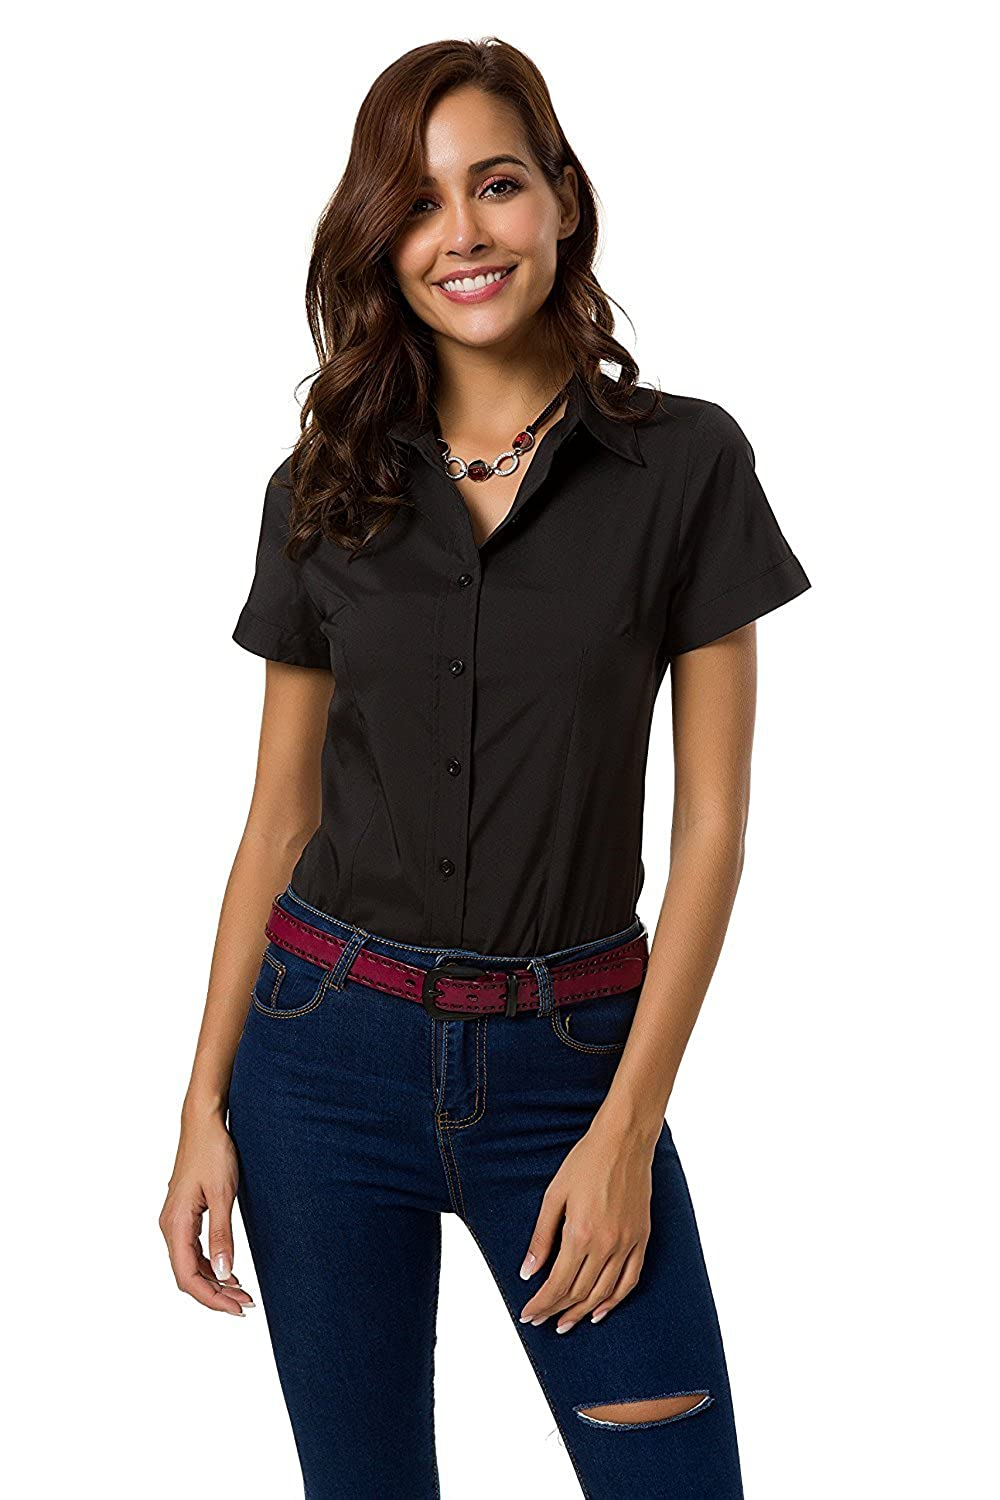 5bfcfc6e Design: Simple button down shirts, women' formal work wear, basic plain short  sleeves tops, slim fit design. Features: Short sleeve, spread collar with  ...